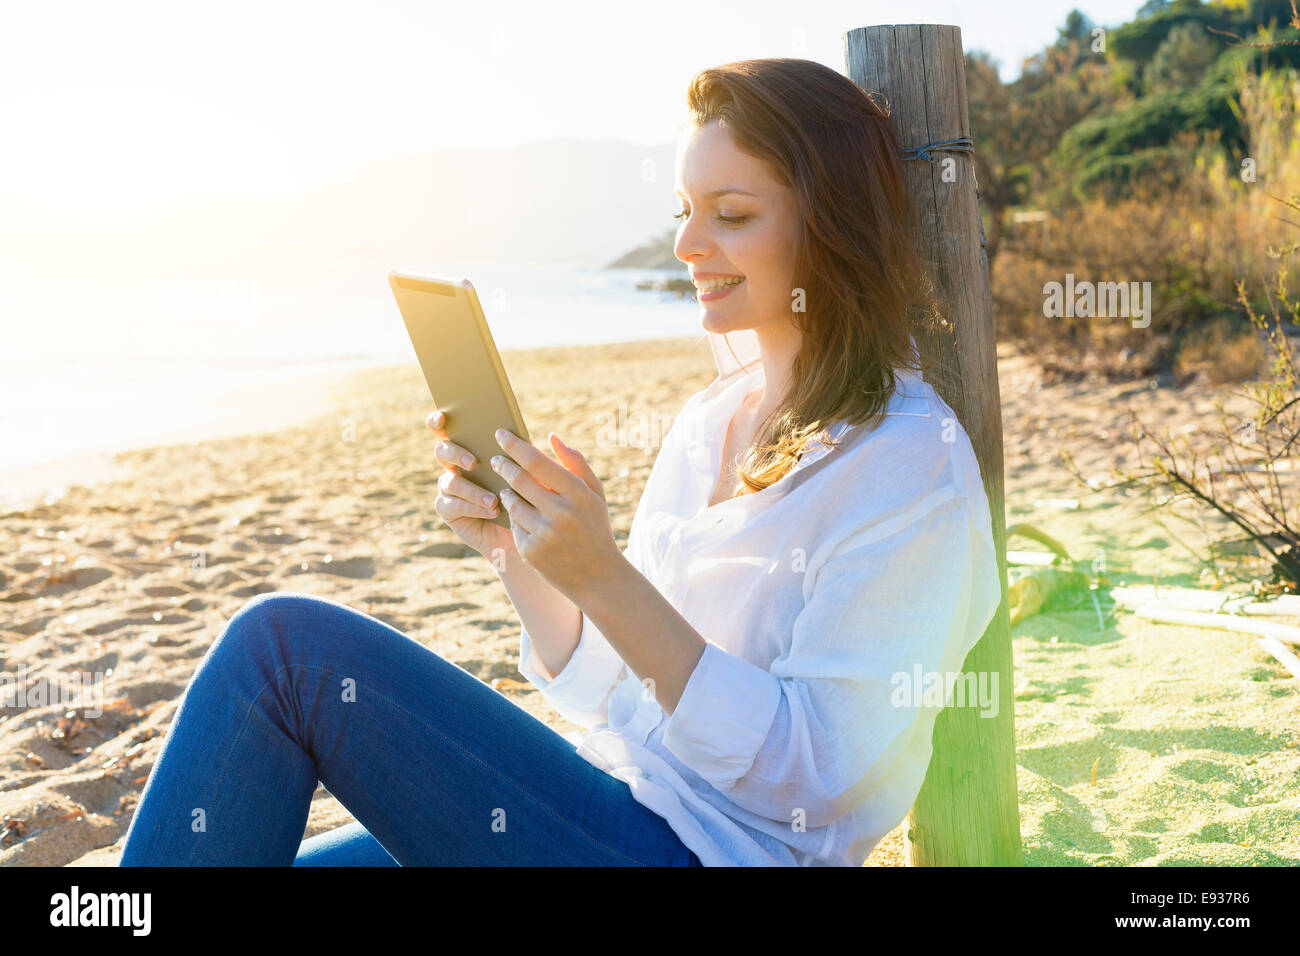 Woman Using a Digital Tablet on the beach - Stock Image